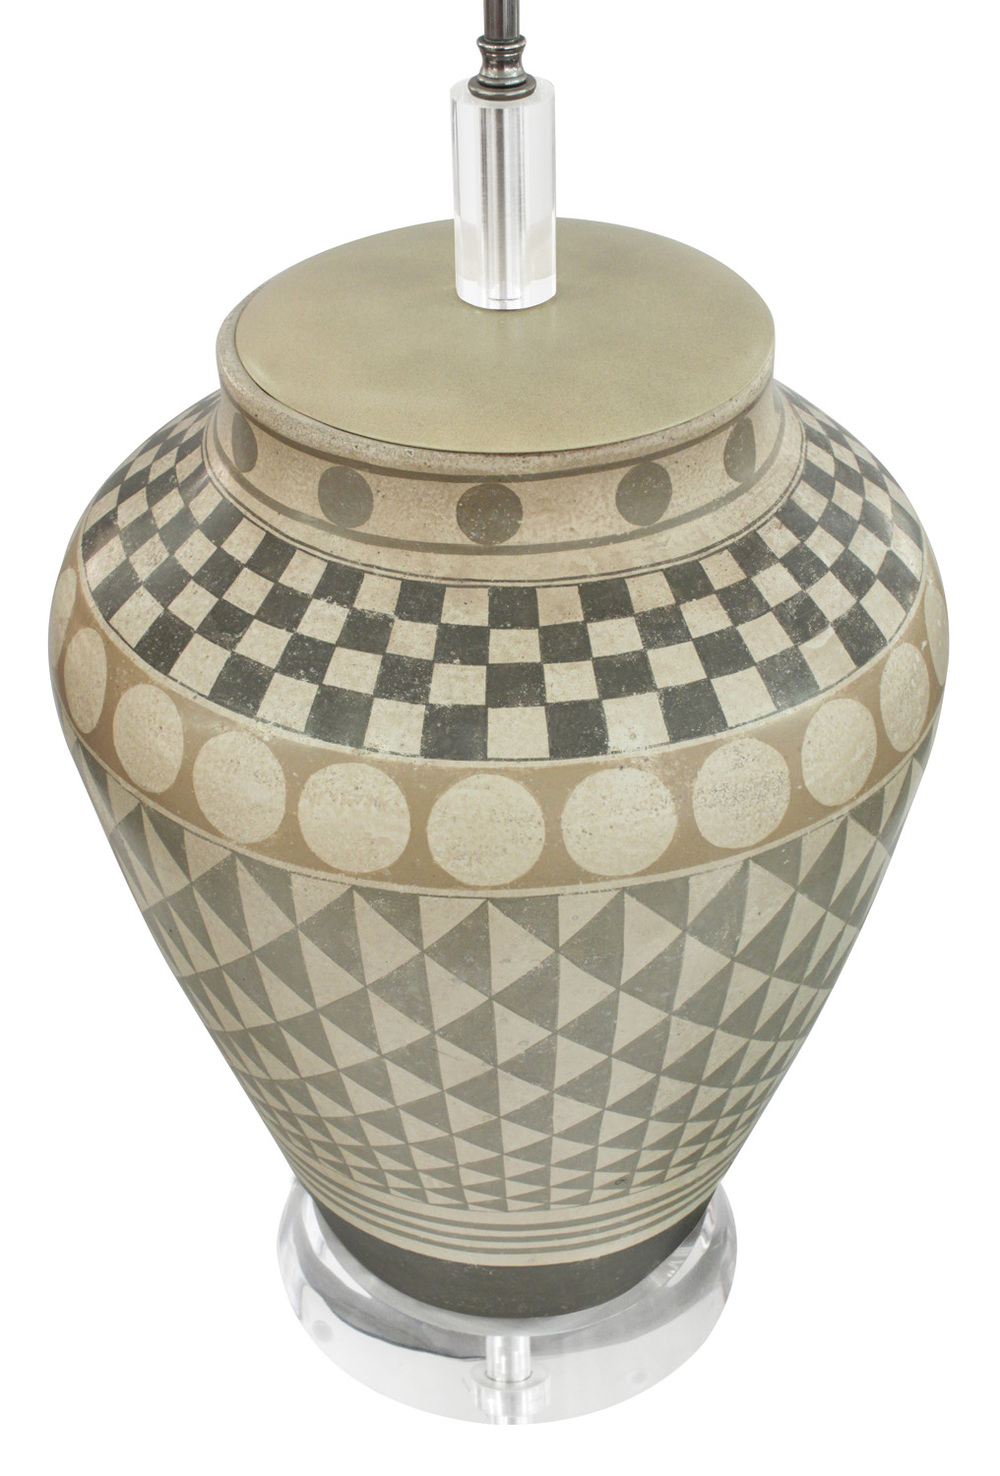 Trattoria G 55 ceramic geom decor tablelamp221 detail1 hires.jpg